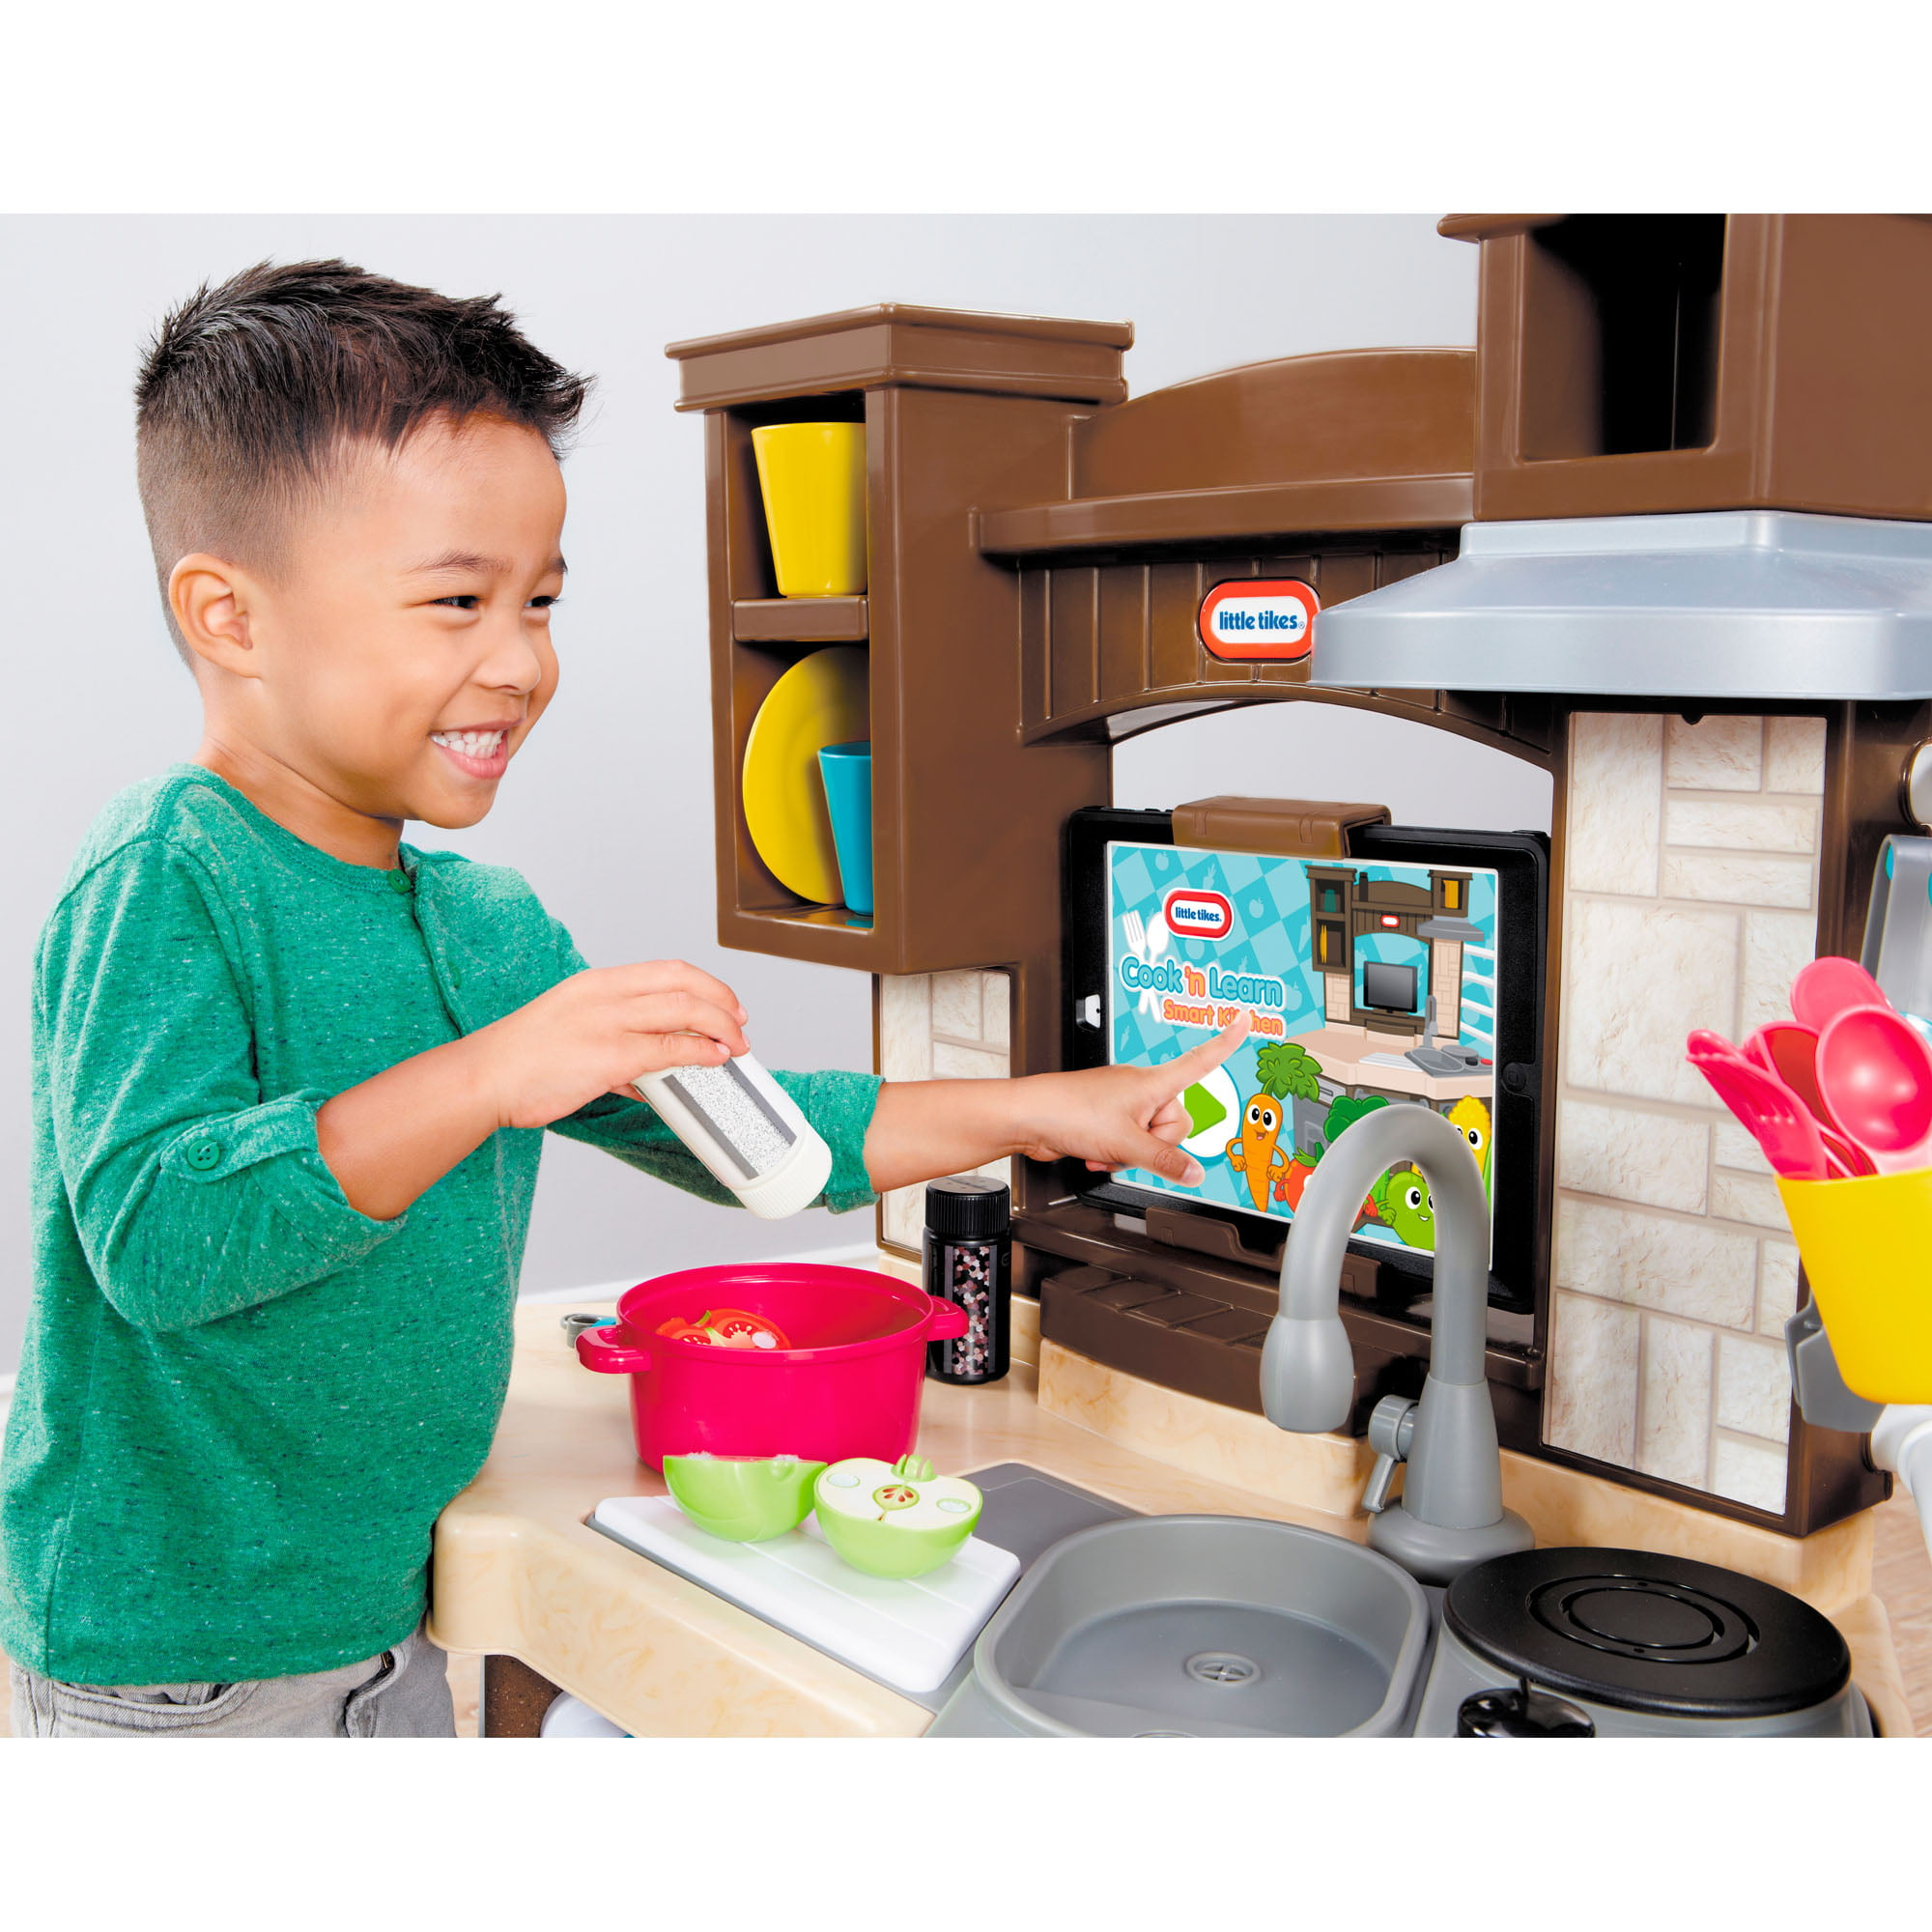 Little Tikes Cook N Learn Smart Play Kitchen With 40 Piece Accessory Play Set And 4 Play Modes Walmart Com Walmart Com